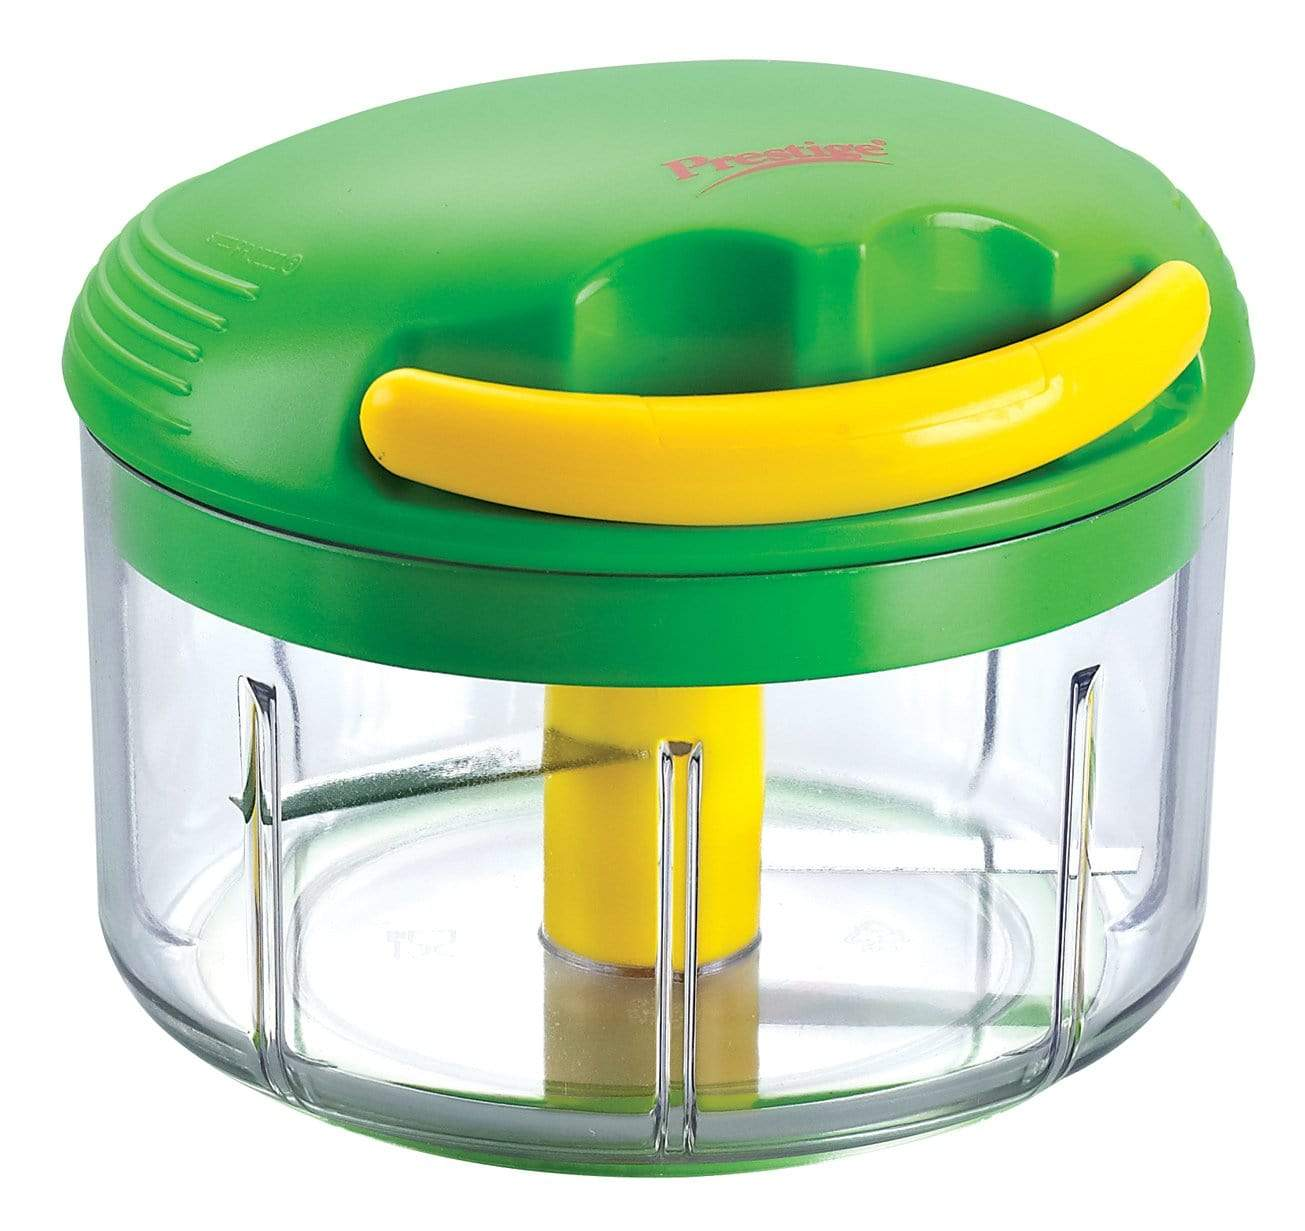 Prestige 1.0 Vegetable Cutter, Green, 500 ml - KITCHEN MART